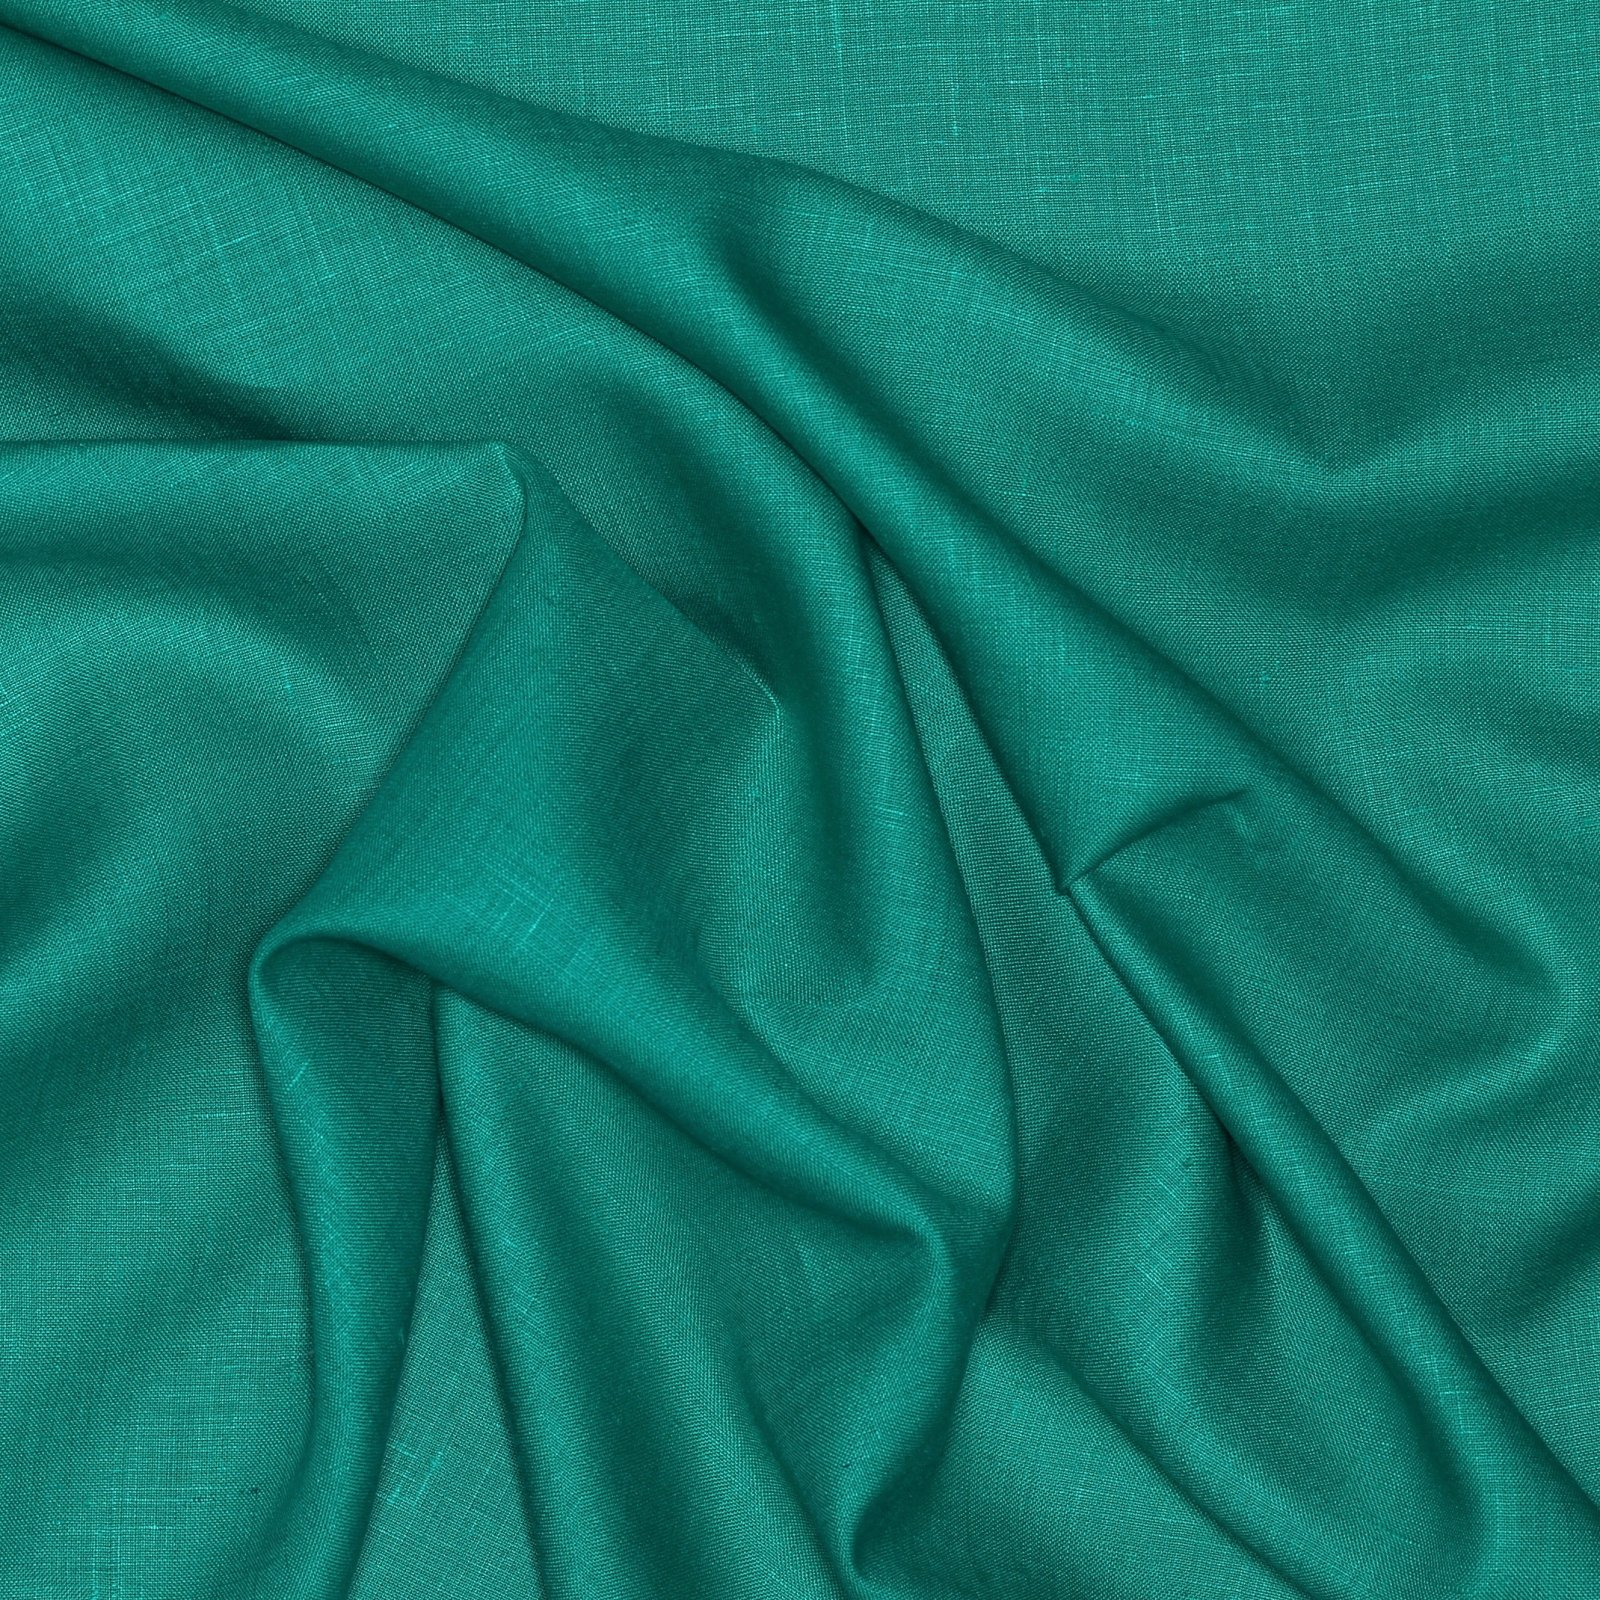 Green Sanforized Italian Linen